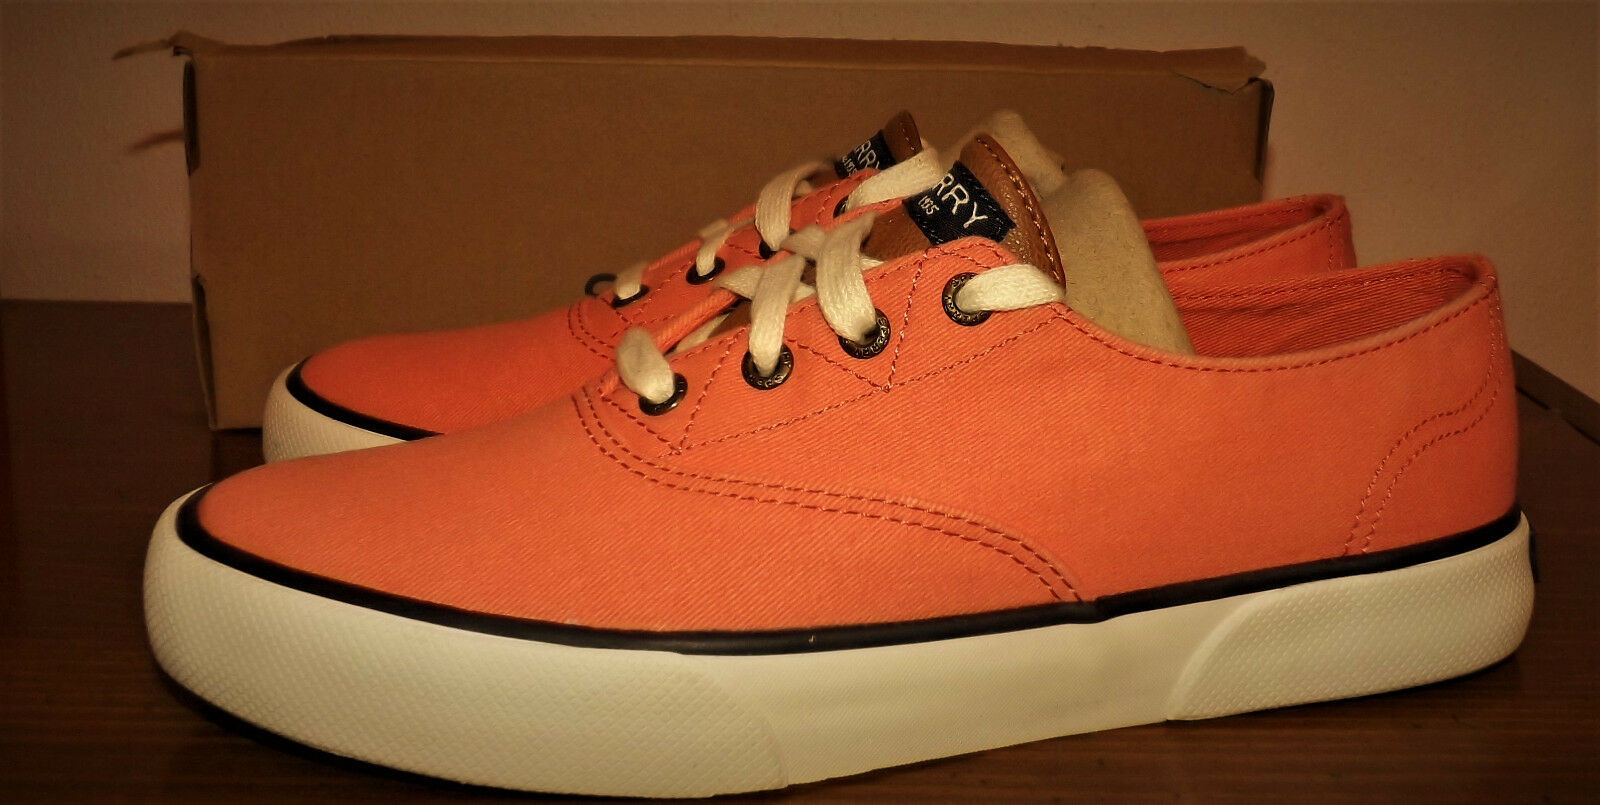 SPERRY TOP SIDER SIZE 8.5M LACE UP orange COMFY SOFT CUSHY INSOLE SHOES WOMENS